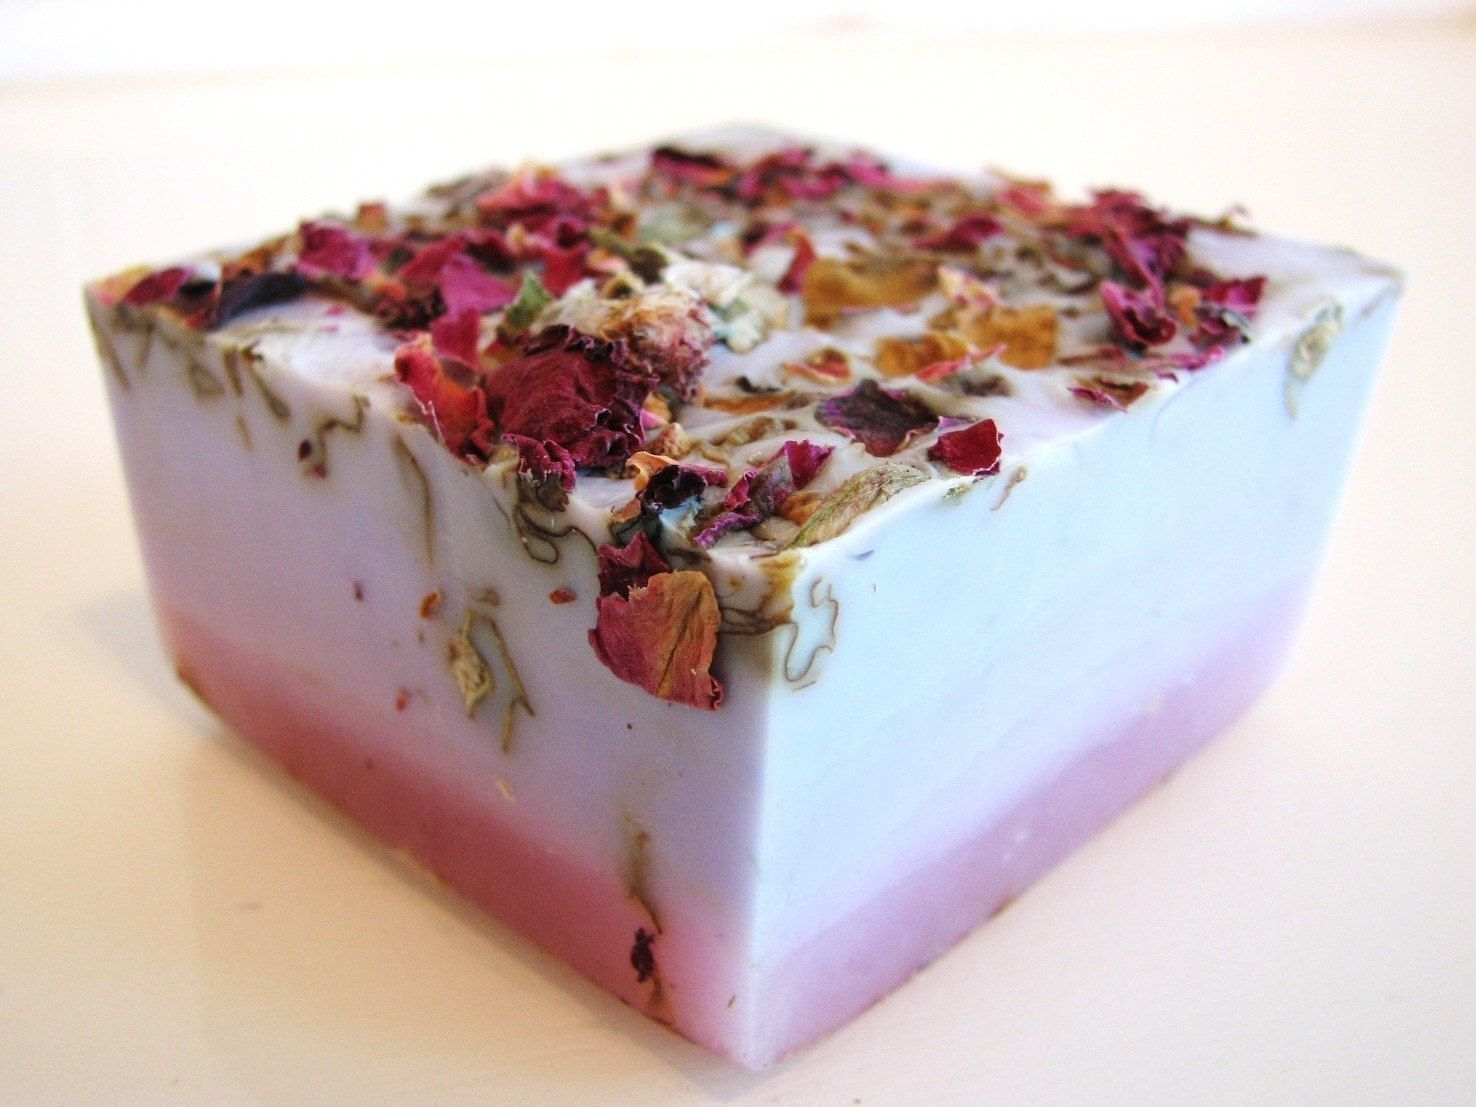 Soap lilac rose soap handmade soap vegan soap soap gift 550 soap lilac rose soap handmade soap vegan soap soap gift gingerbread soap vegan handmade soap simple do it yourself craft ideas 20 solutioingenieria Image collections